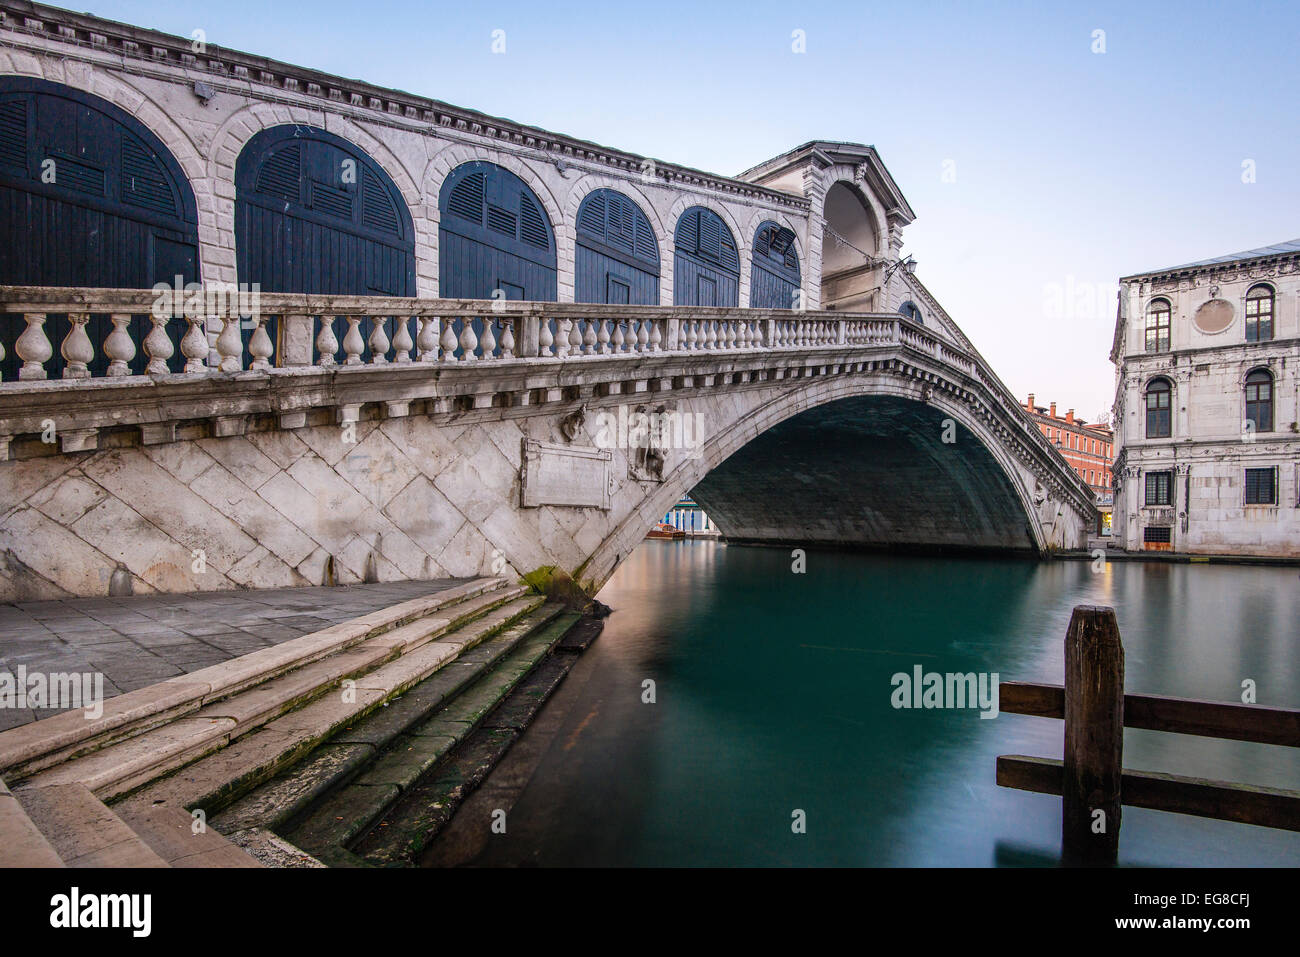 Rialto Bridge at dawn, Venice, Veneto, Italy - Stock Image